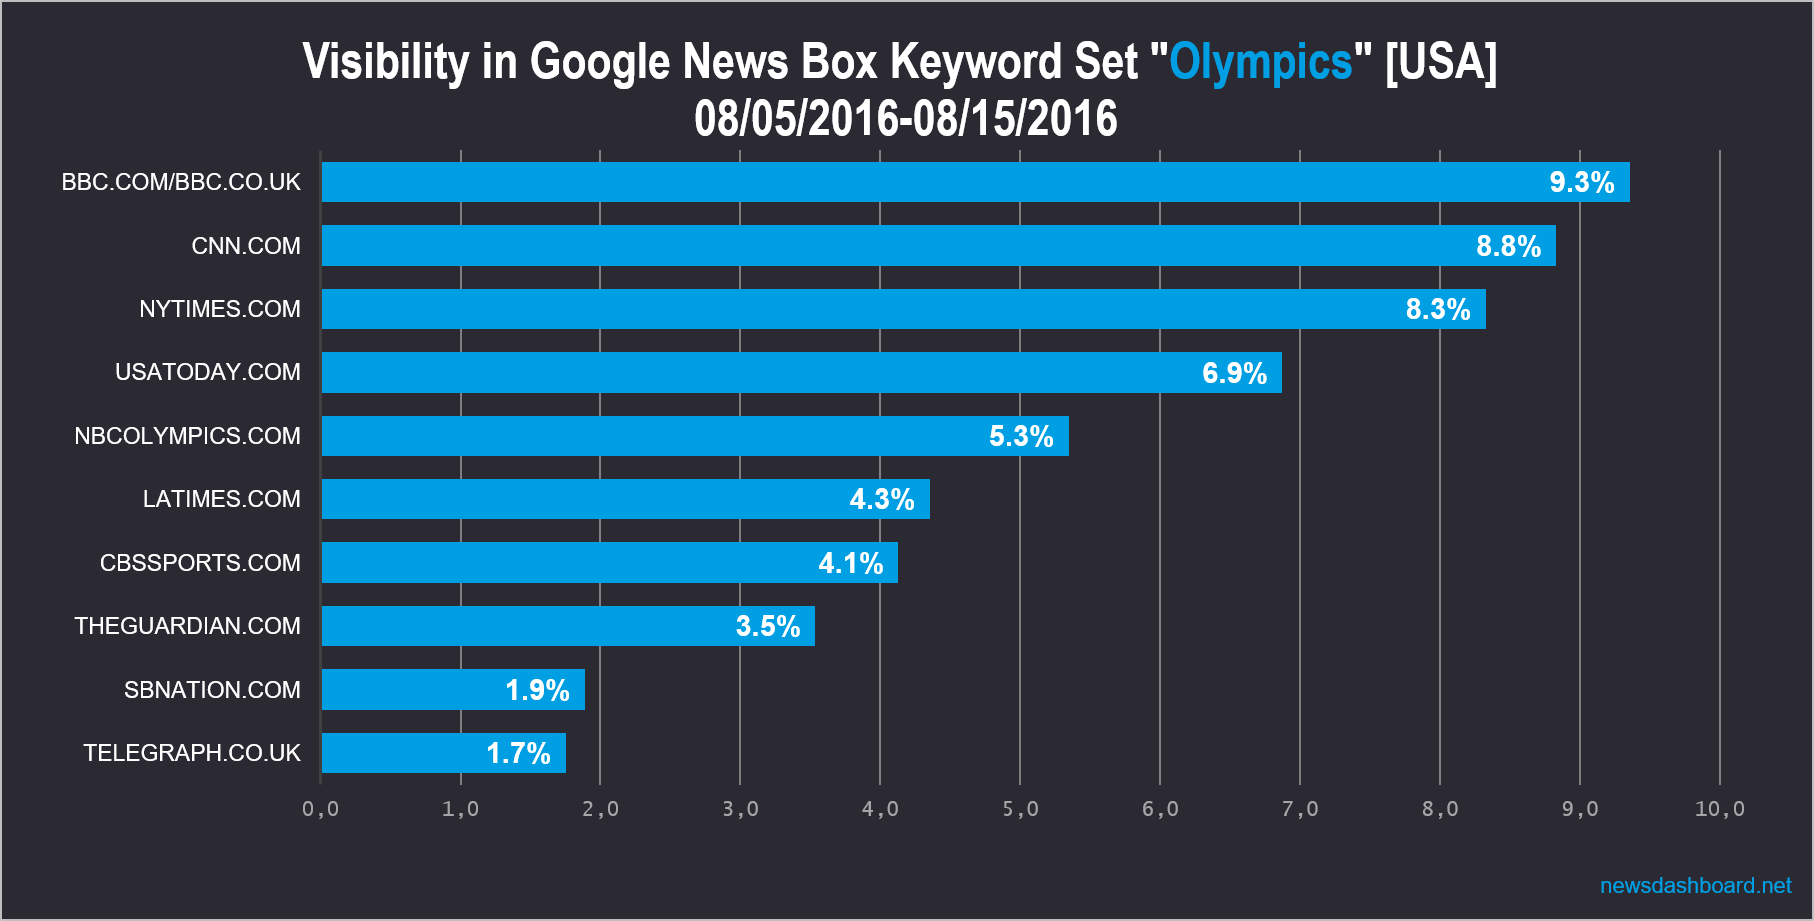 bbc.com has highest visibility around the keyword set for the Olympics